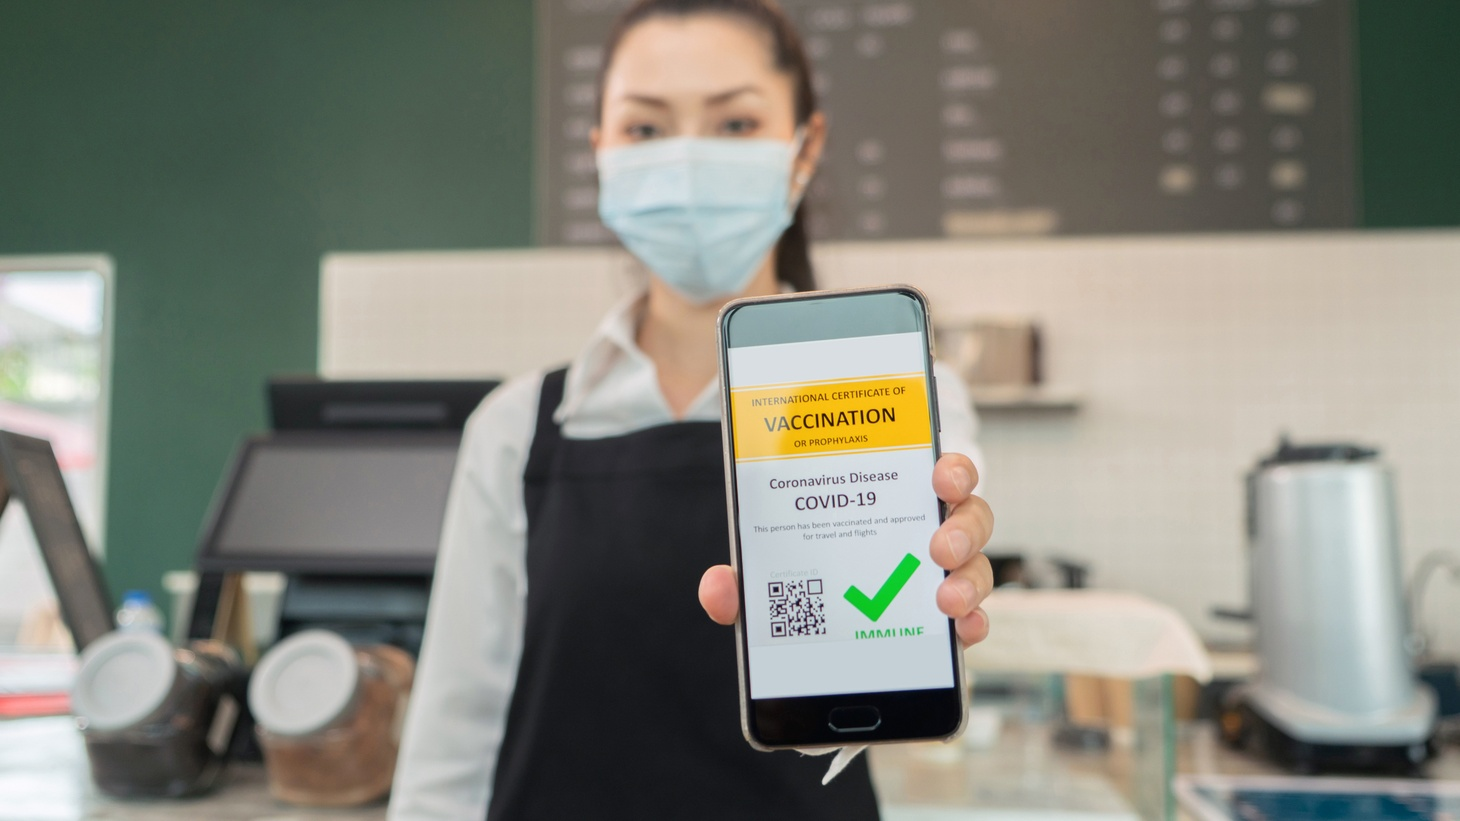 People looking to use public indoor facilities like restaurants, gyms and movie theaters in Los Angeles will likely soon have to flash their proof of vaccination. Also across California, the number of institutions that want to see your vaccination card is growing.